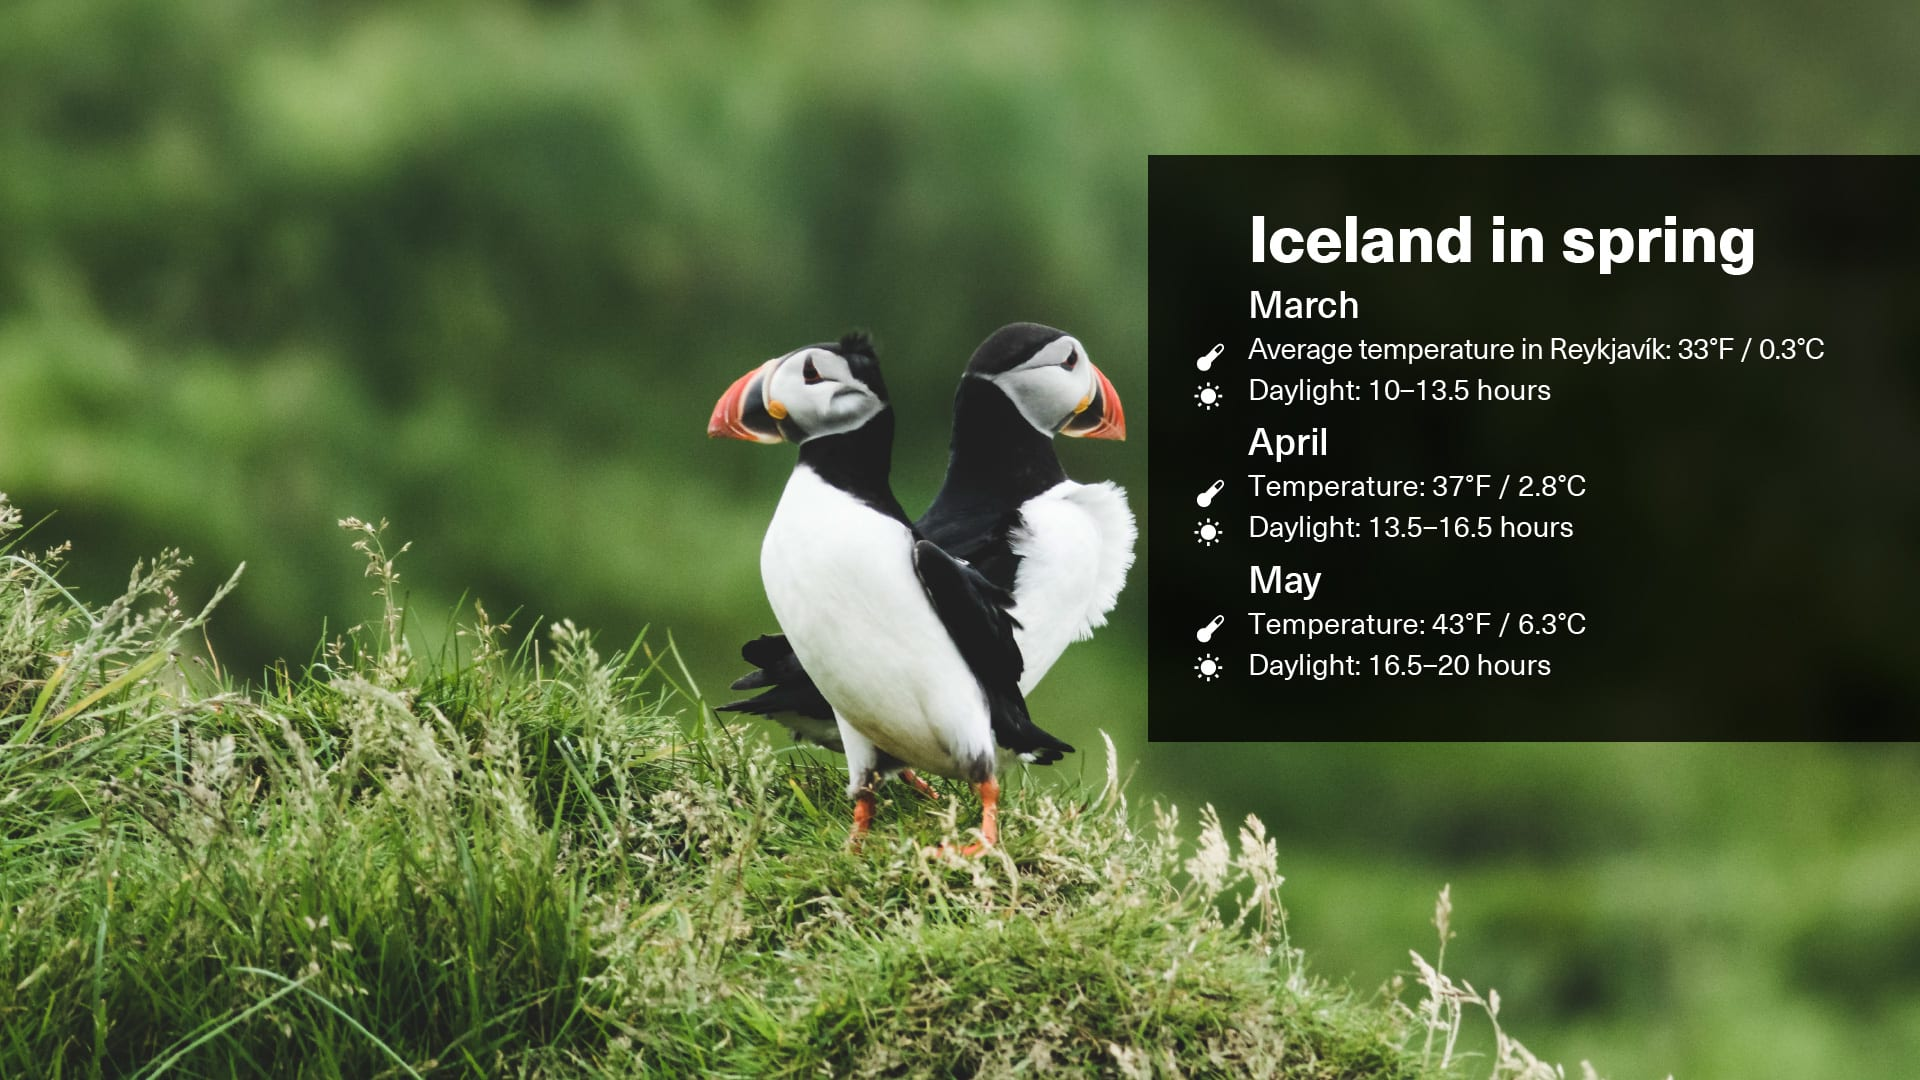 Spring weather displayed on a graphic illustrative image with puffin imagery and text overleaf that shows the temperature and daylight hours in March, April and May in Iceland